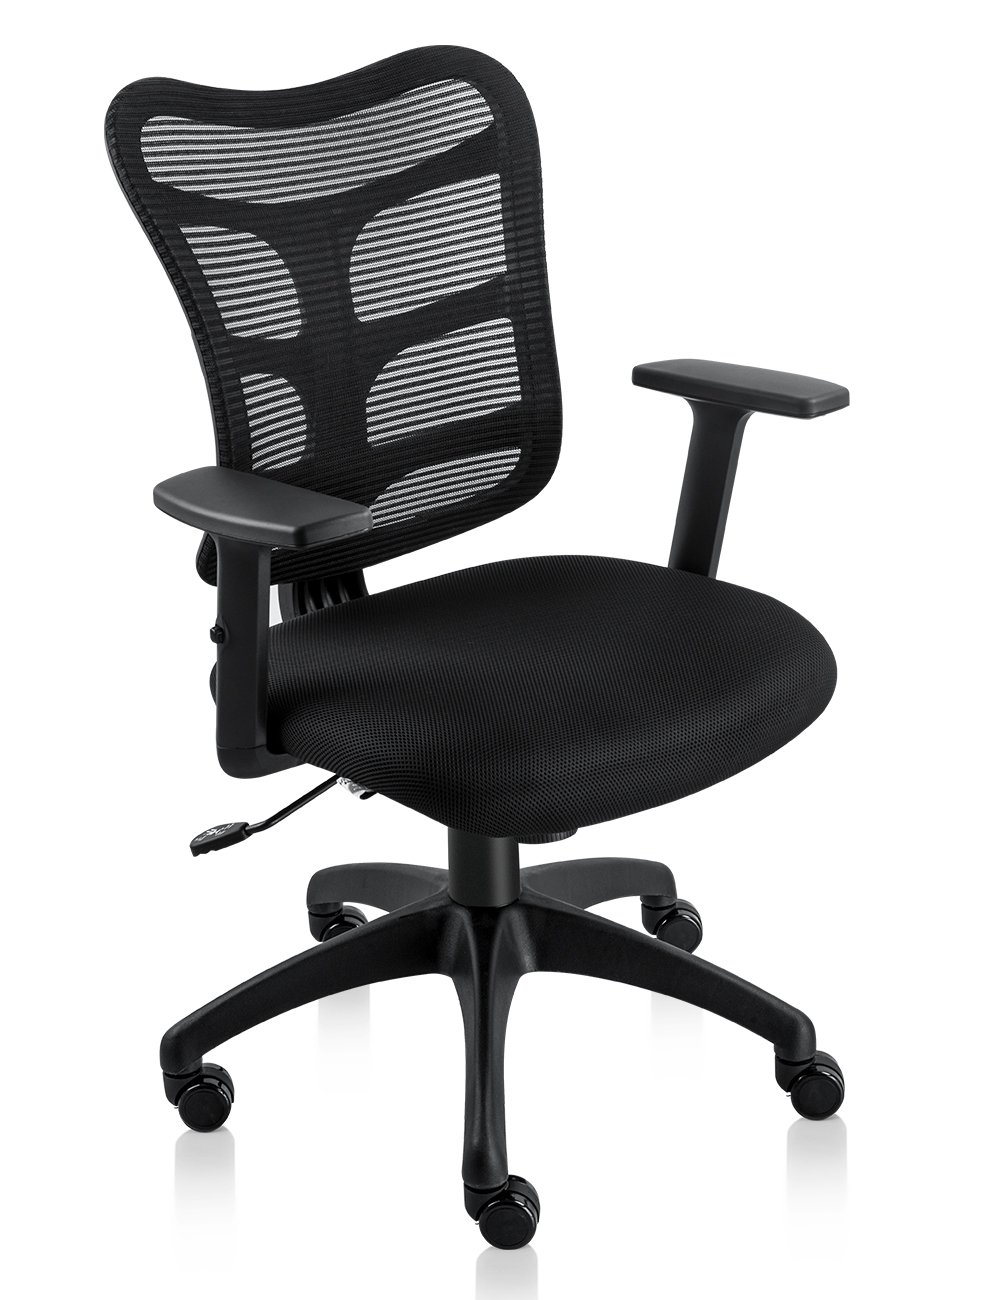 NKV Mid Back Mesh Chair Task Office Chair Desk Computer Chair Ergonomic Swivel Home Chair with Adjustable Armrests (Black)